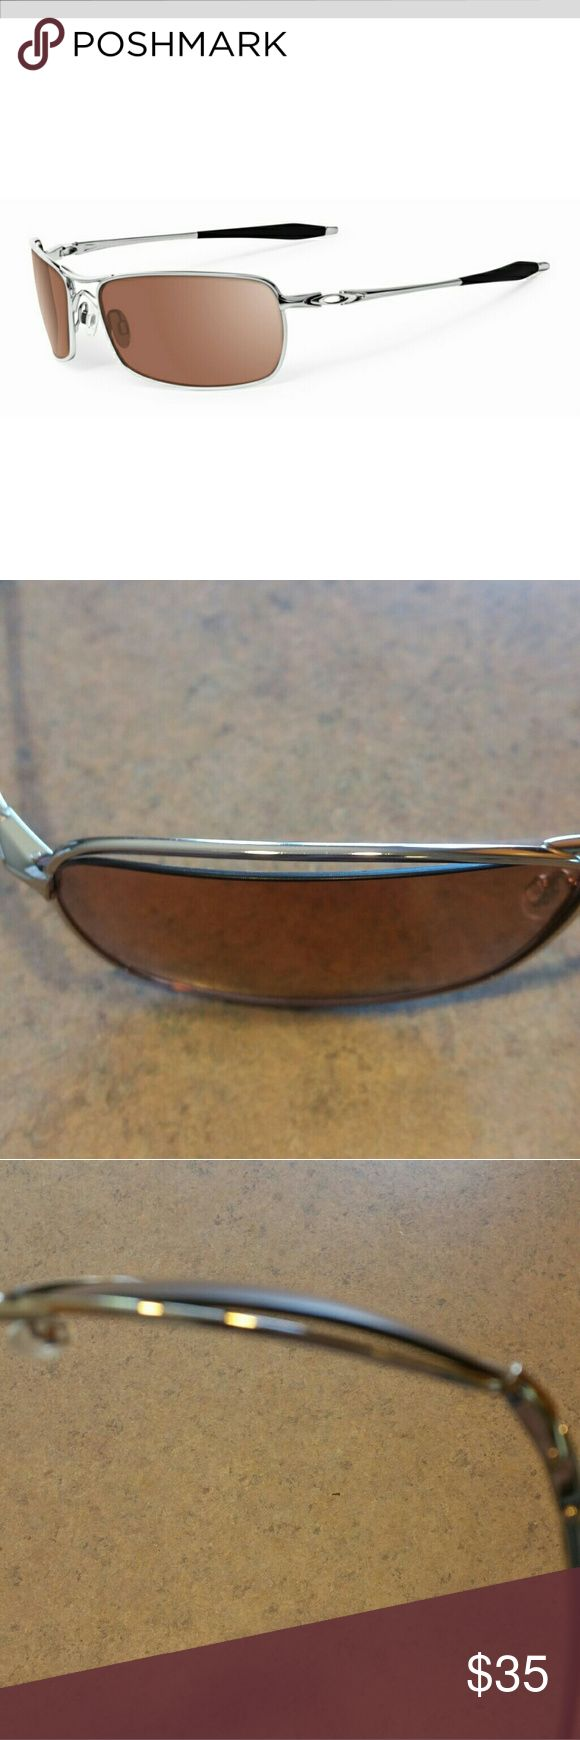 oakley frames without lenses gy5m  Bent* Oakley Crosshair 20 OO4044-05 *Bent Lens And FramesThe